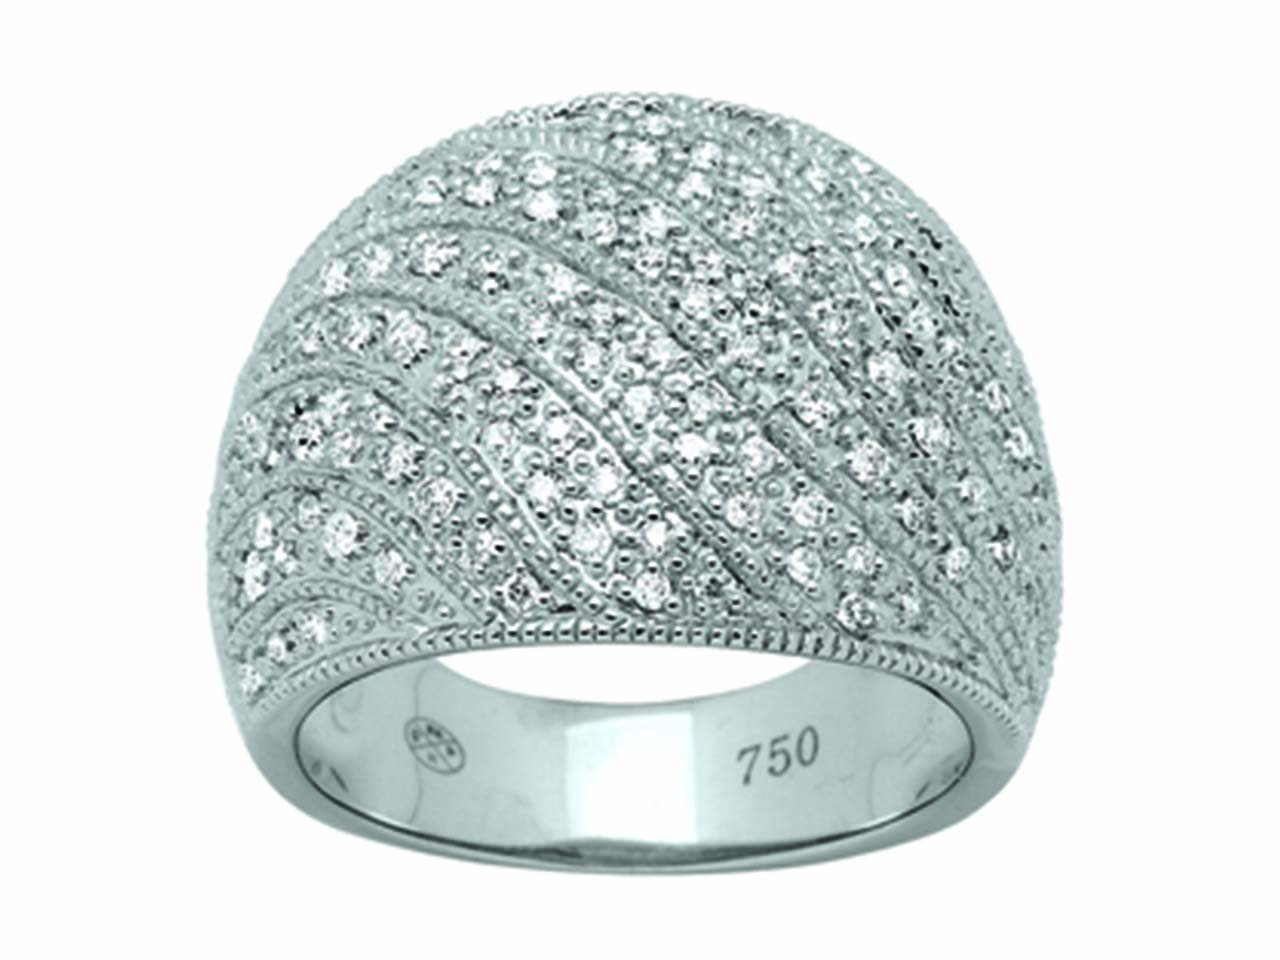 Bague volume mouvement, Or gris, diamants 0,68 ct